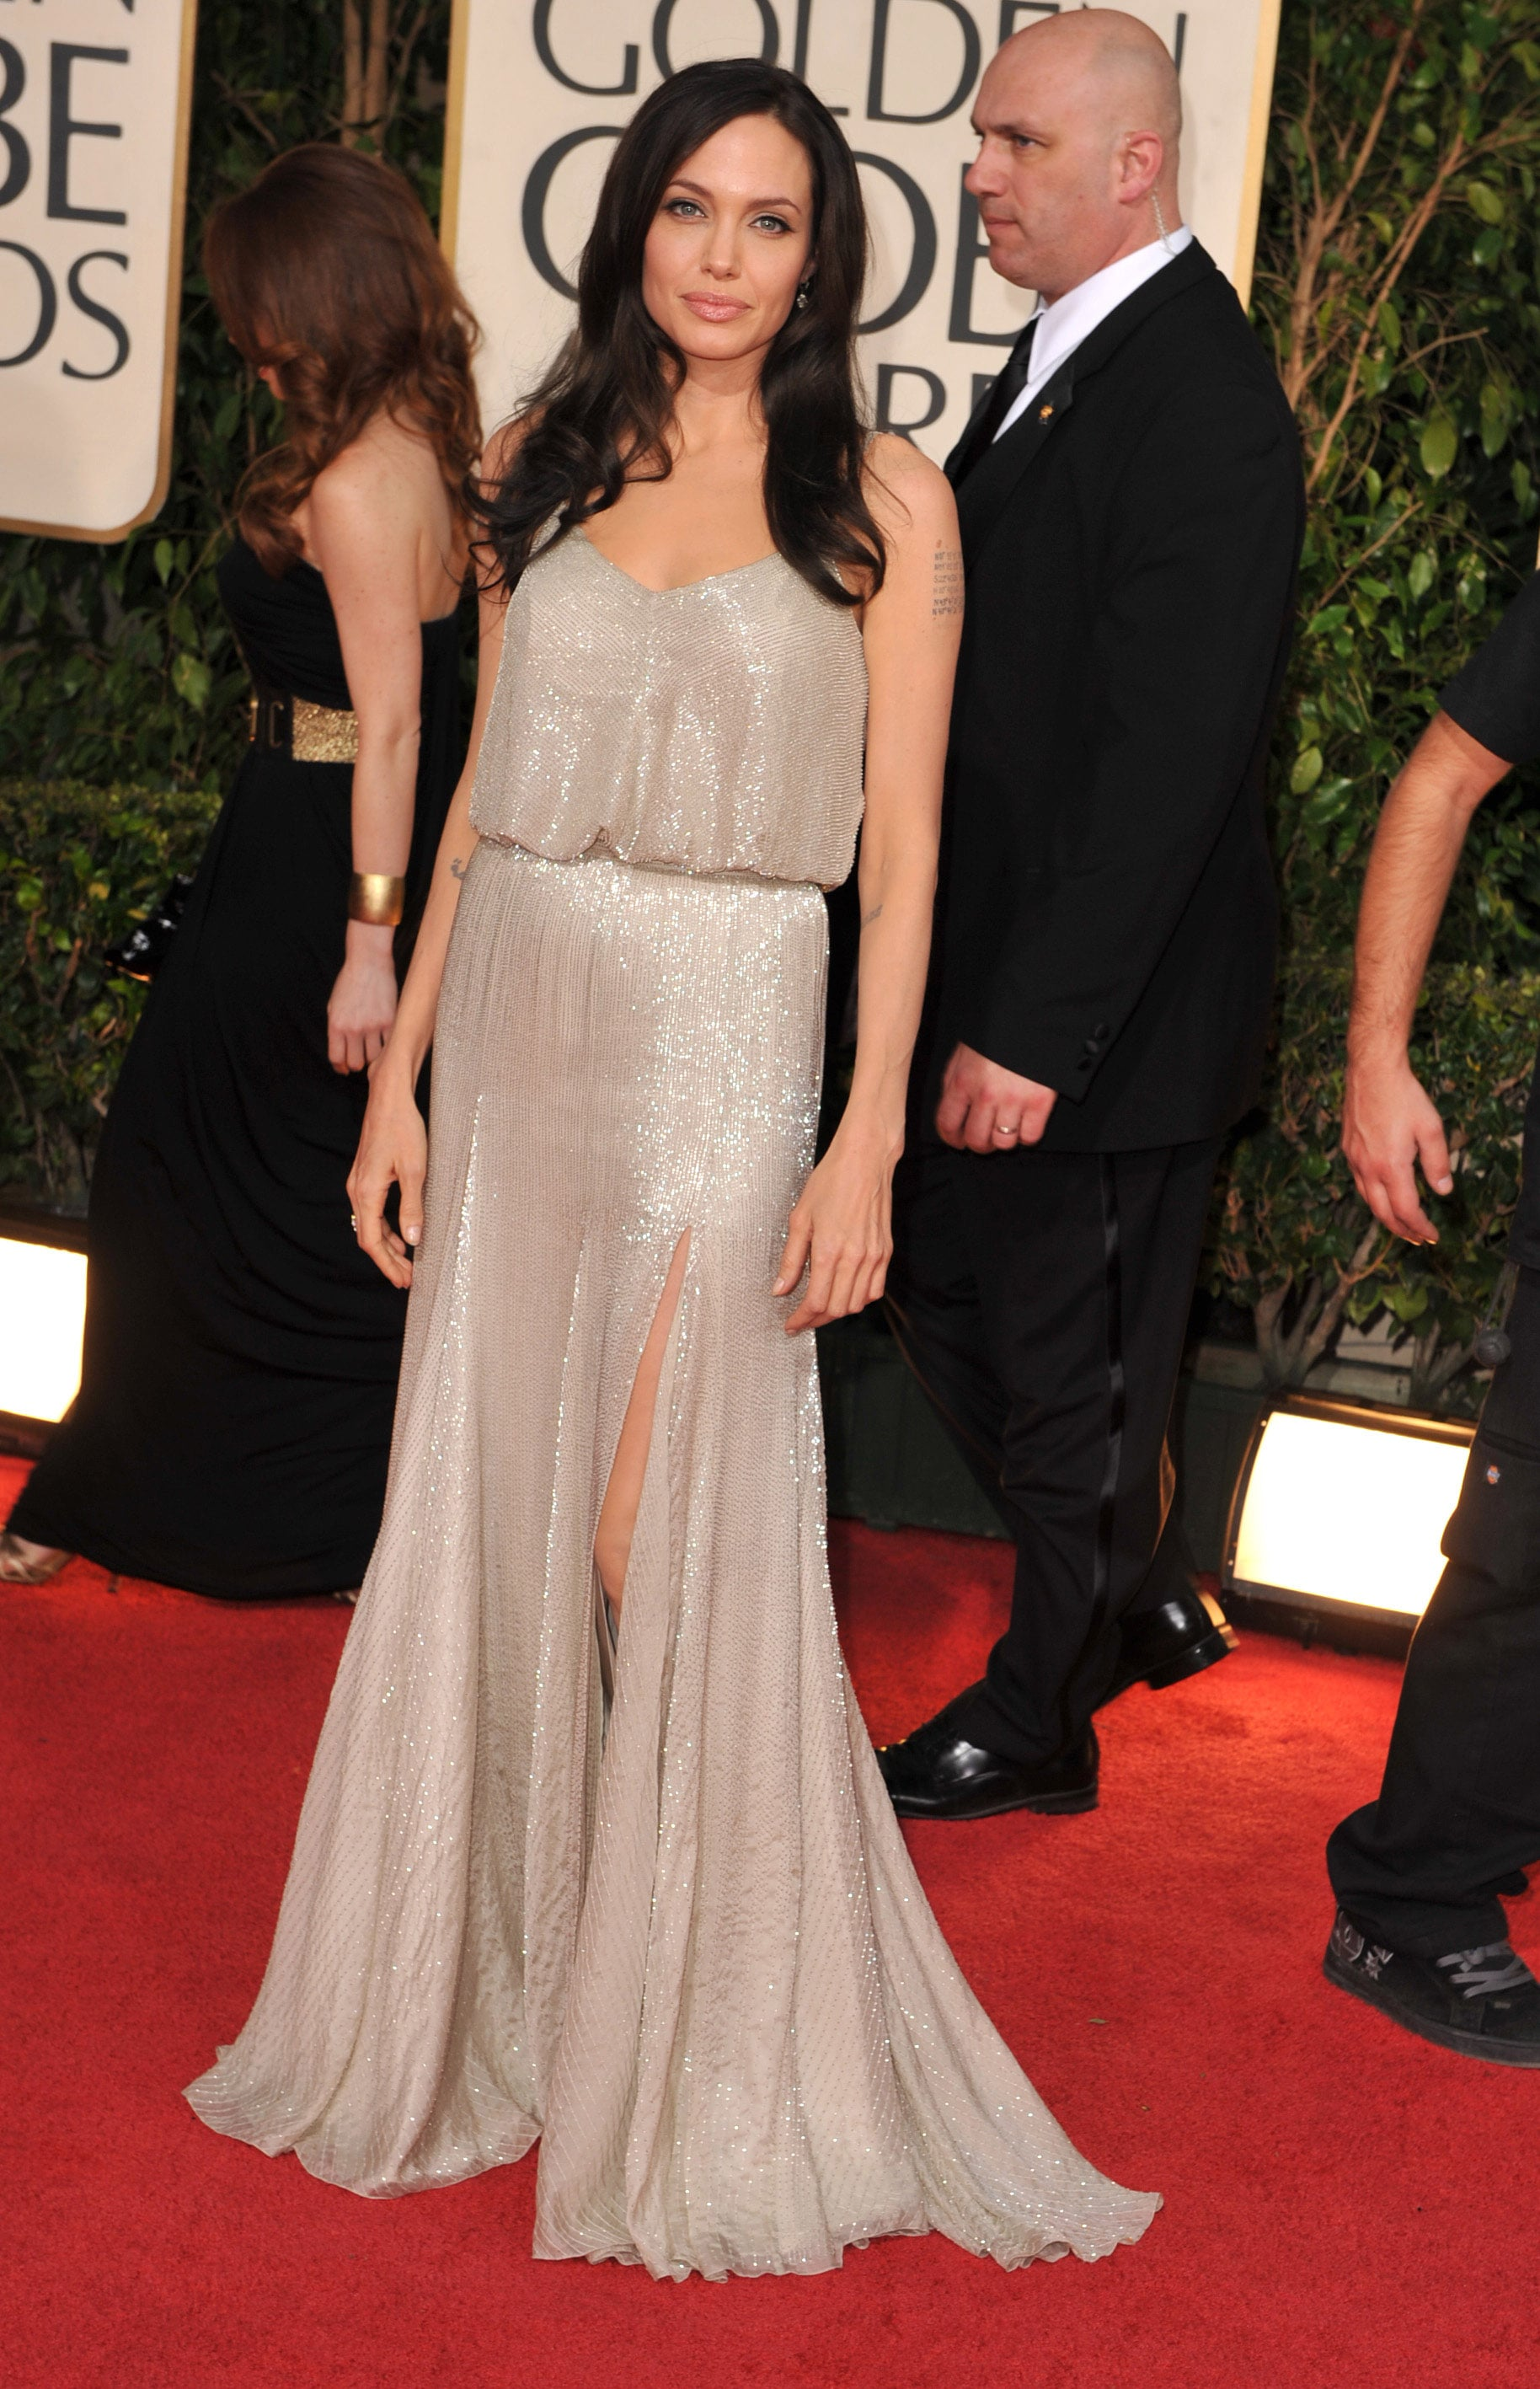 Angelina Jolie At The 2009 Golden Globe Awards Angelina Jolie S Wedding Dress Isn T Even Her Best Versace Look Popsugar Fashion Uk Photo 7